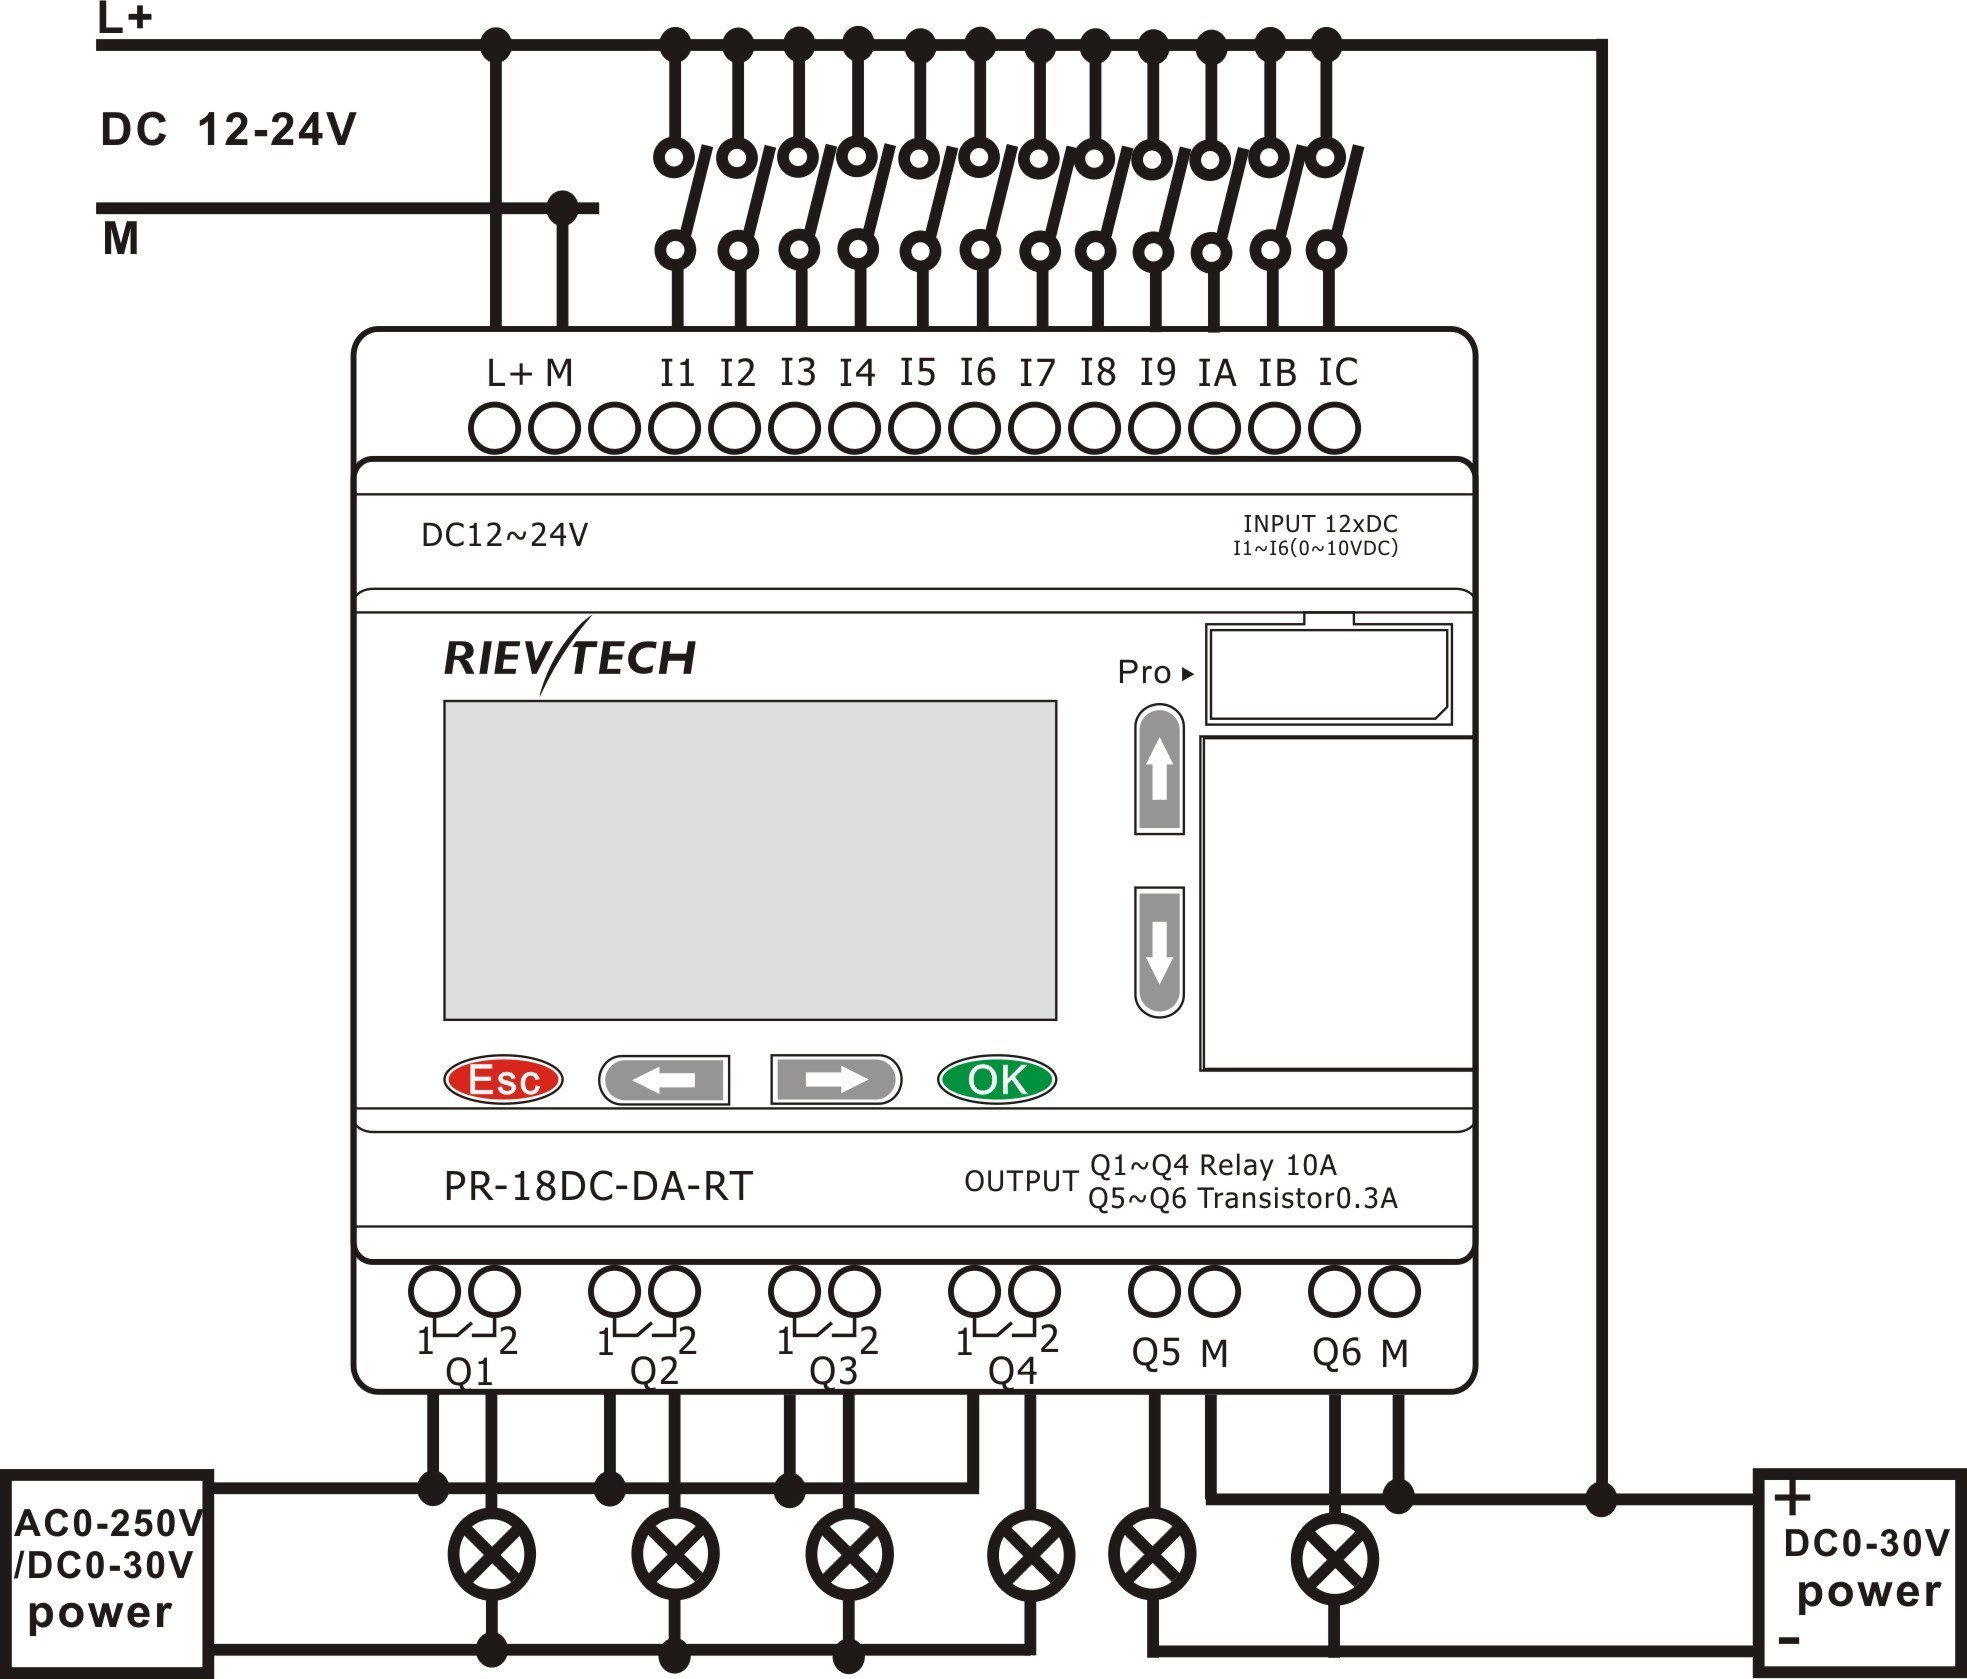 Control And Relay Panel Wiring Diagram Pdf Manual Guide